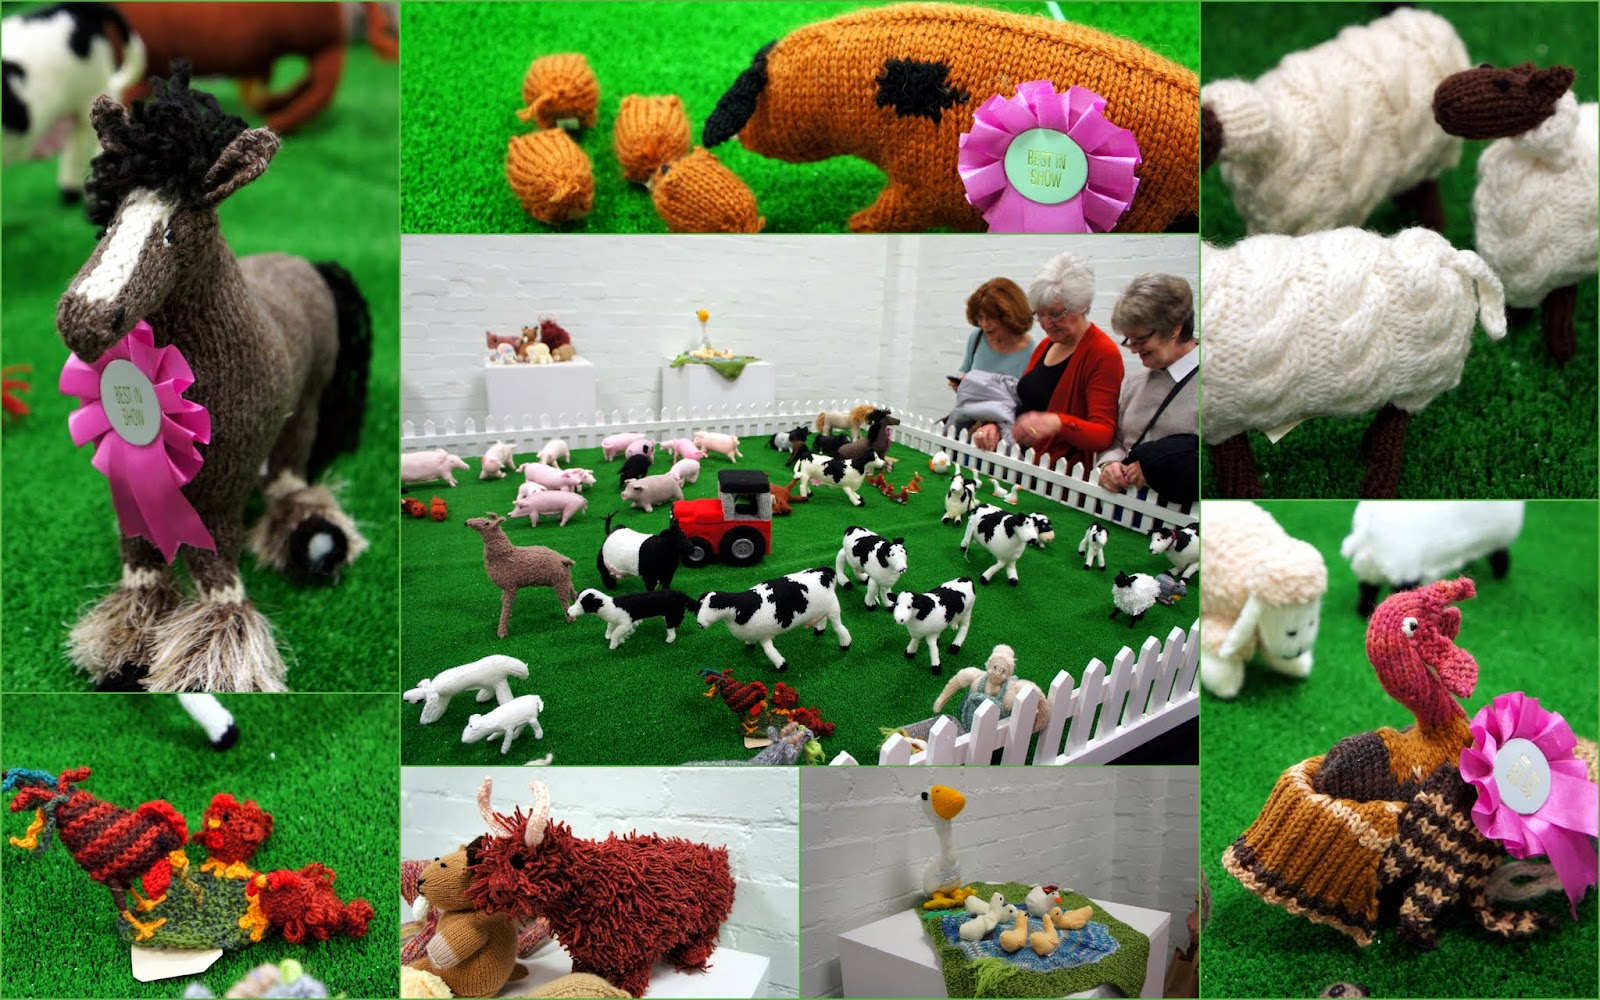 GRANNYS WORLD: Knitting - Spring Knitting and Stitching Show